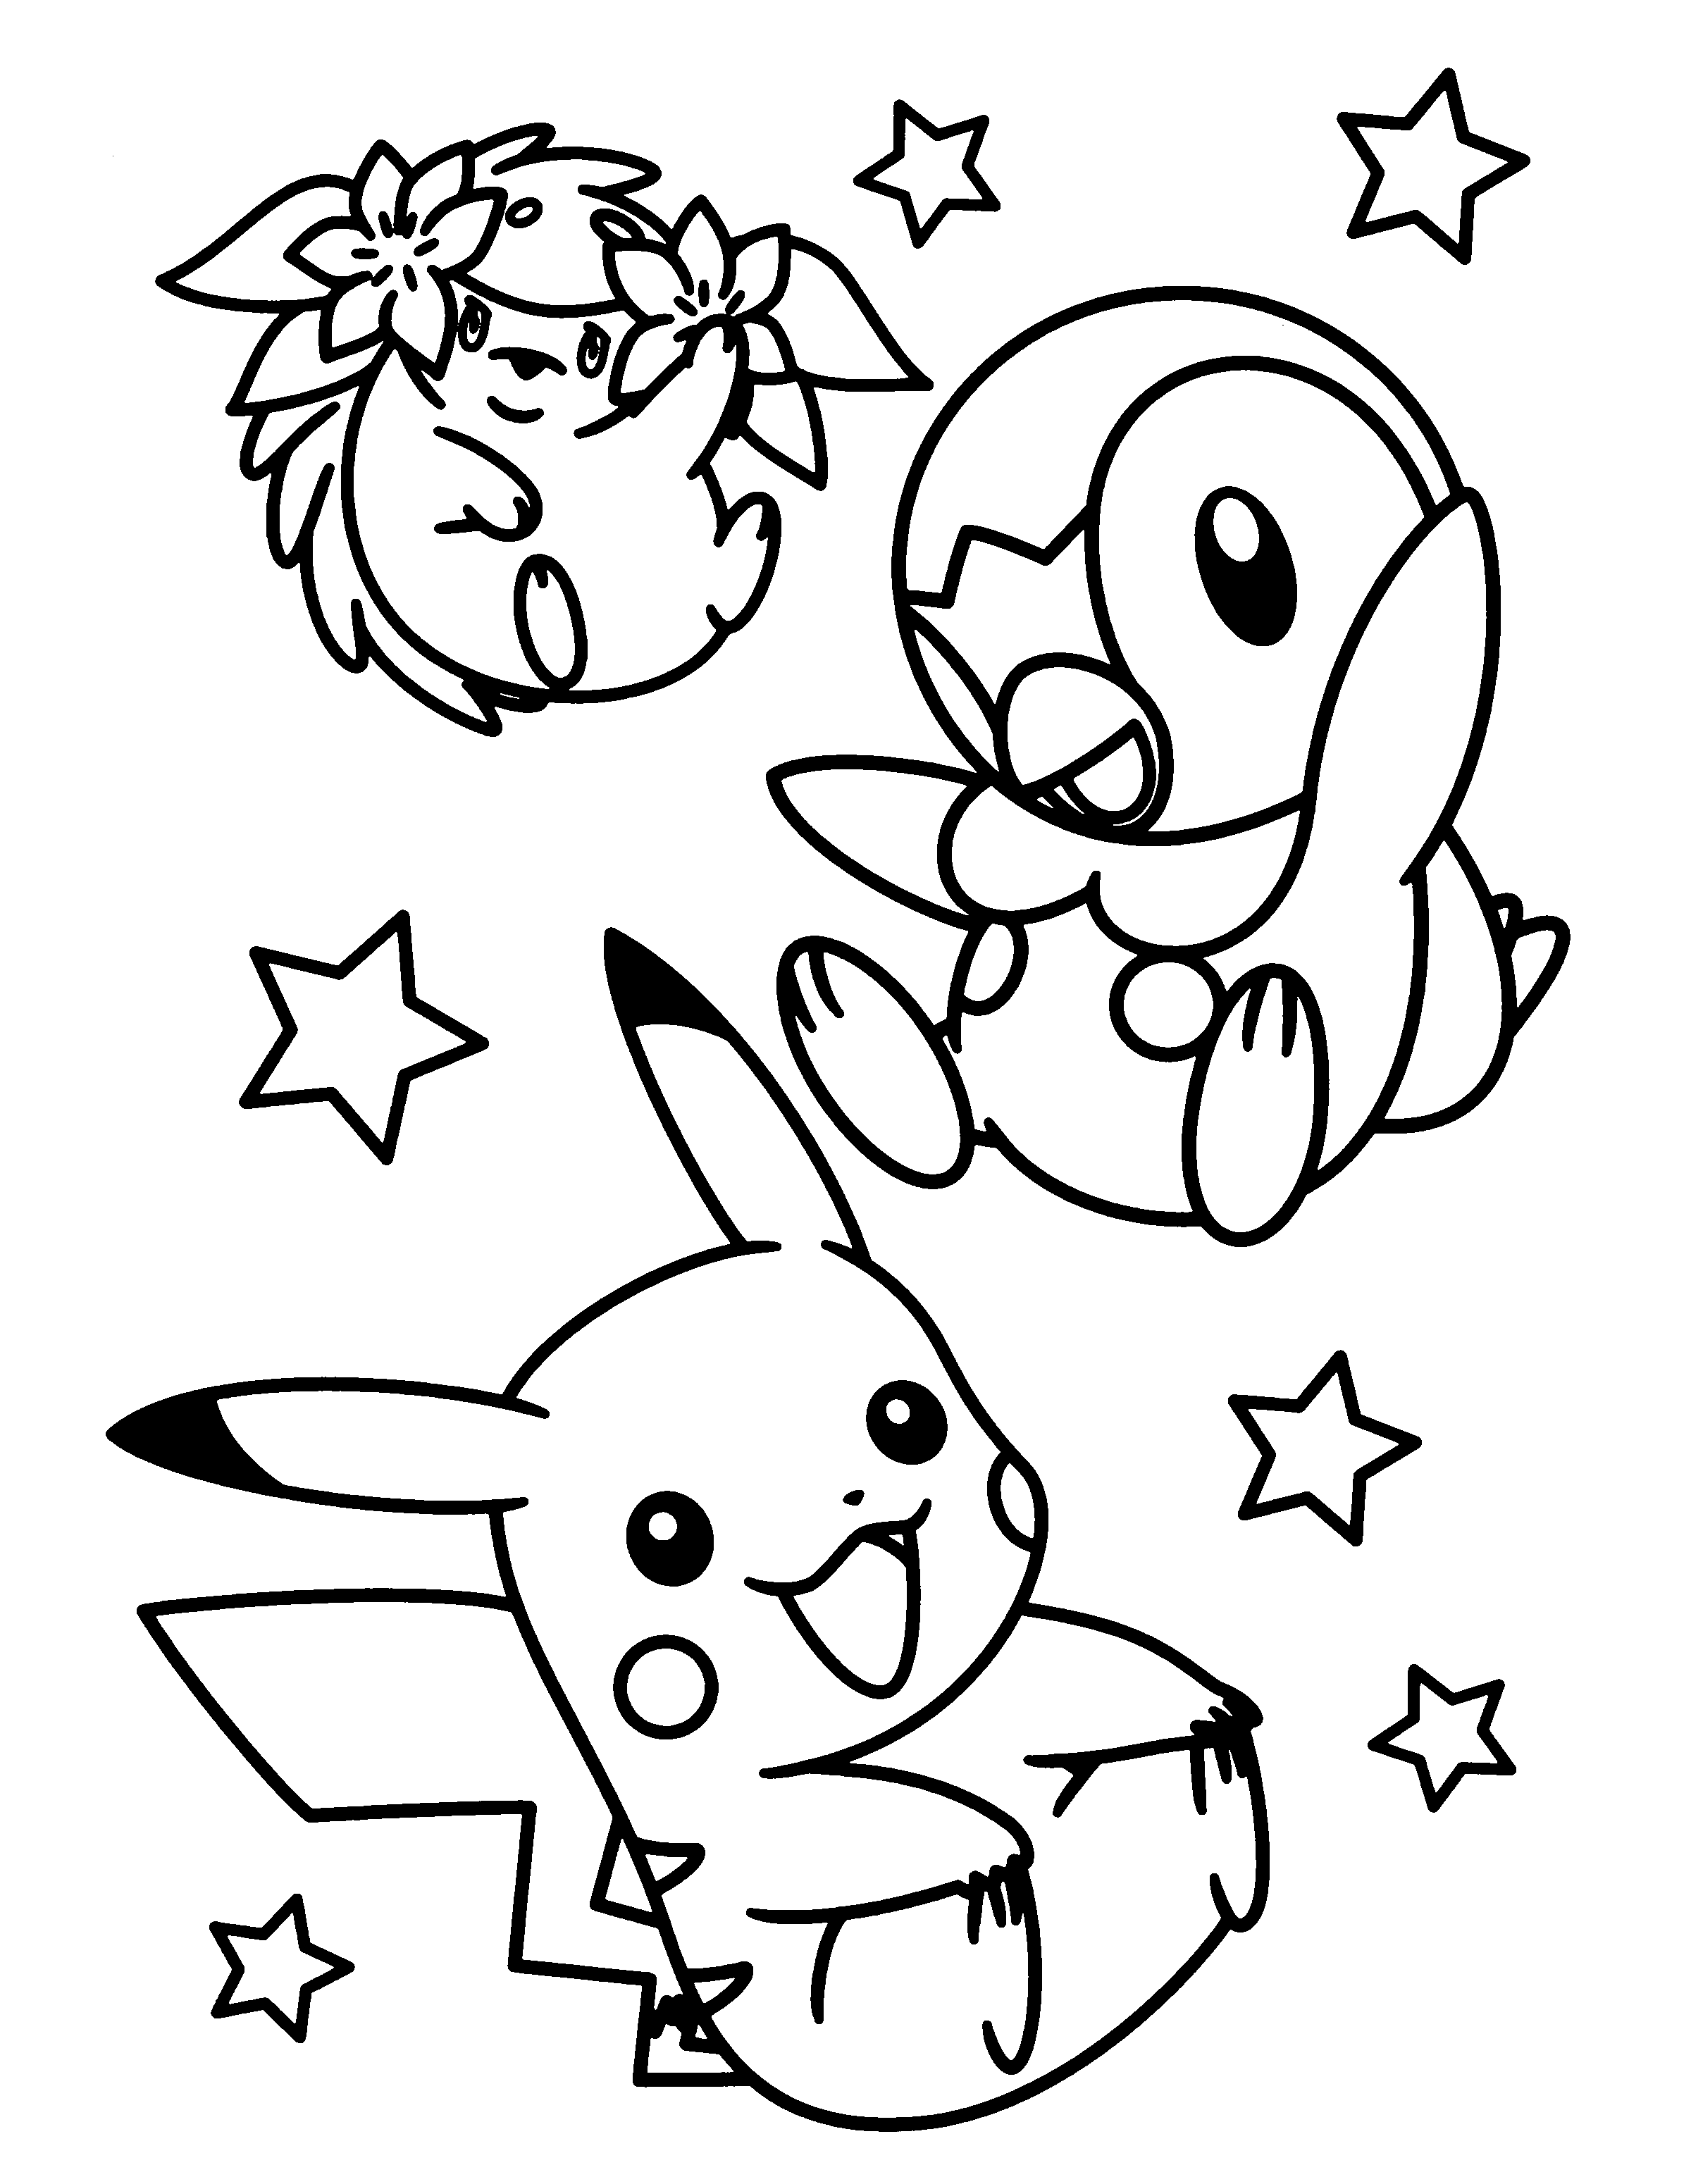 pakemon diamond pearl coloring pages - photo #4